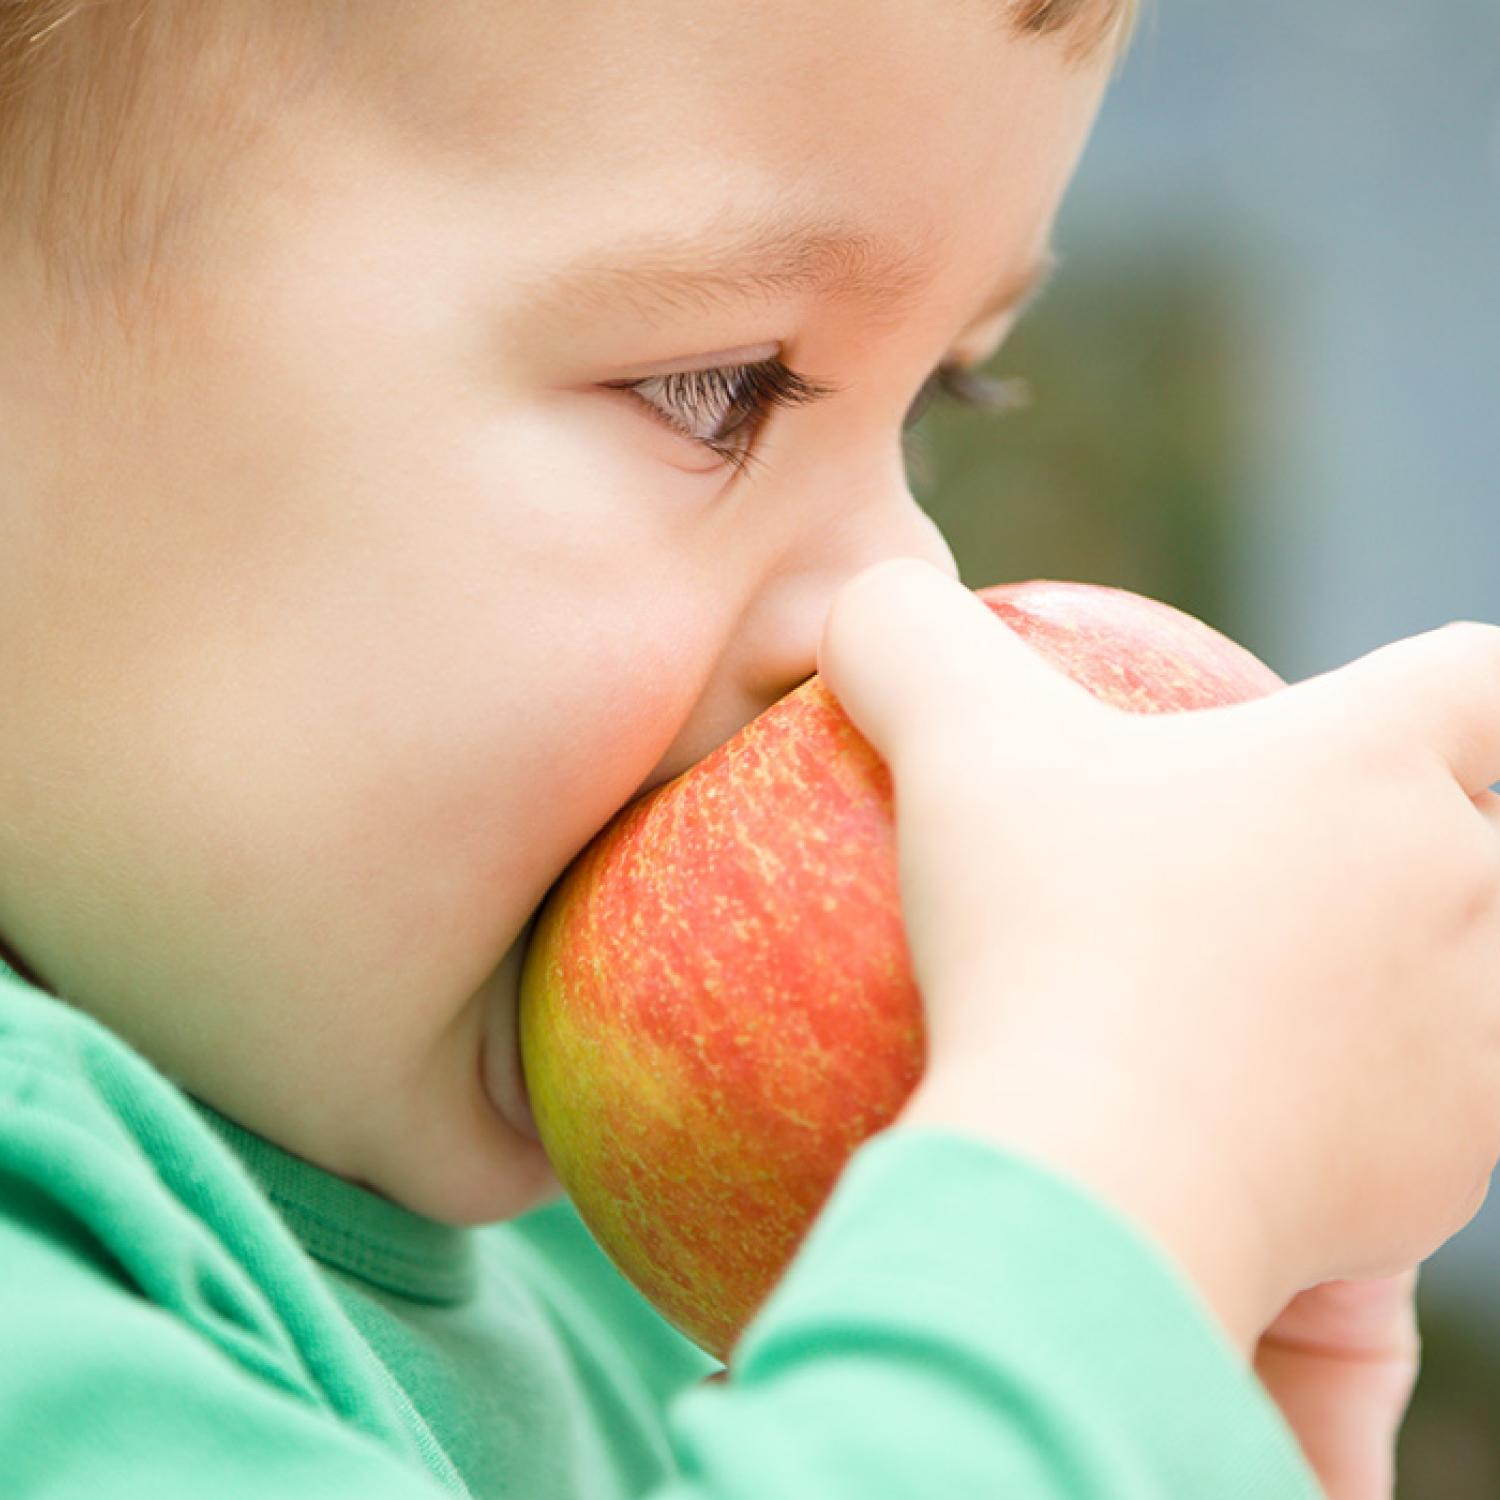 Help Kids Fun Ways To Teach Kids About Healthy Food Choices Parenting